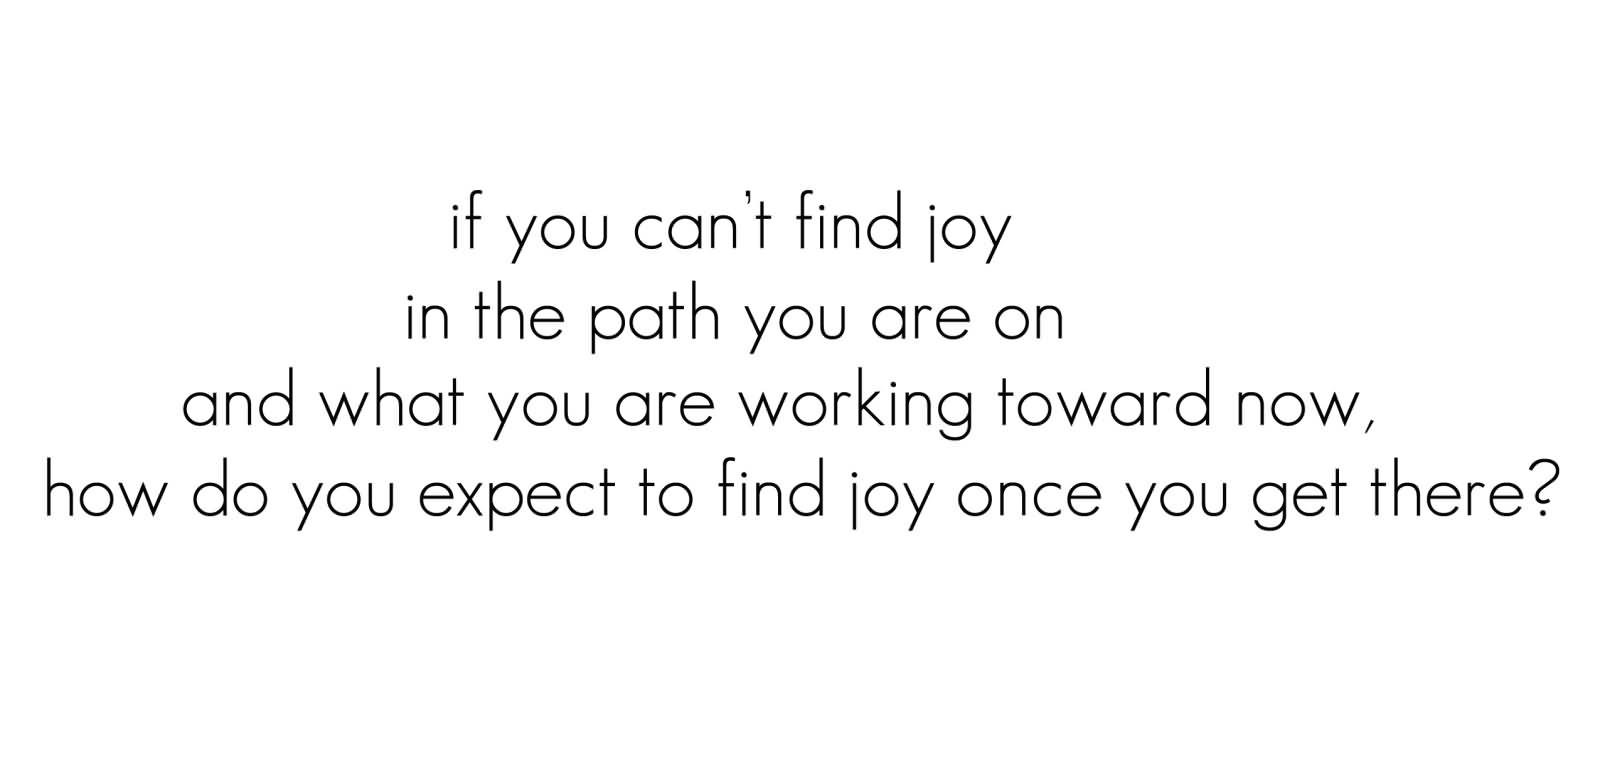 If You Can't Find Joy In The Path You Are On And What You Are Working Toward Now, How Do You Expect To Find Joy Once You Get There